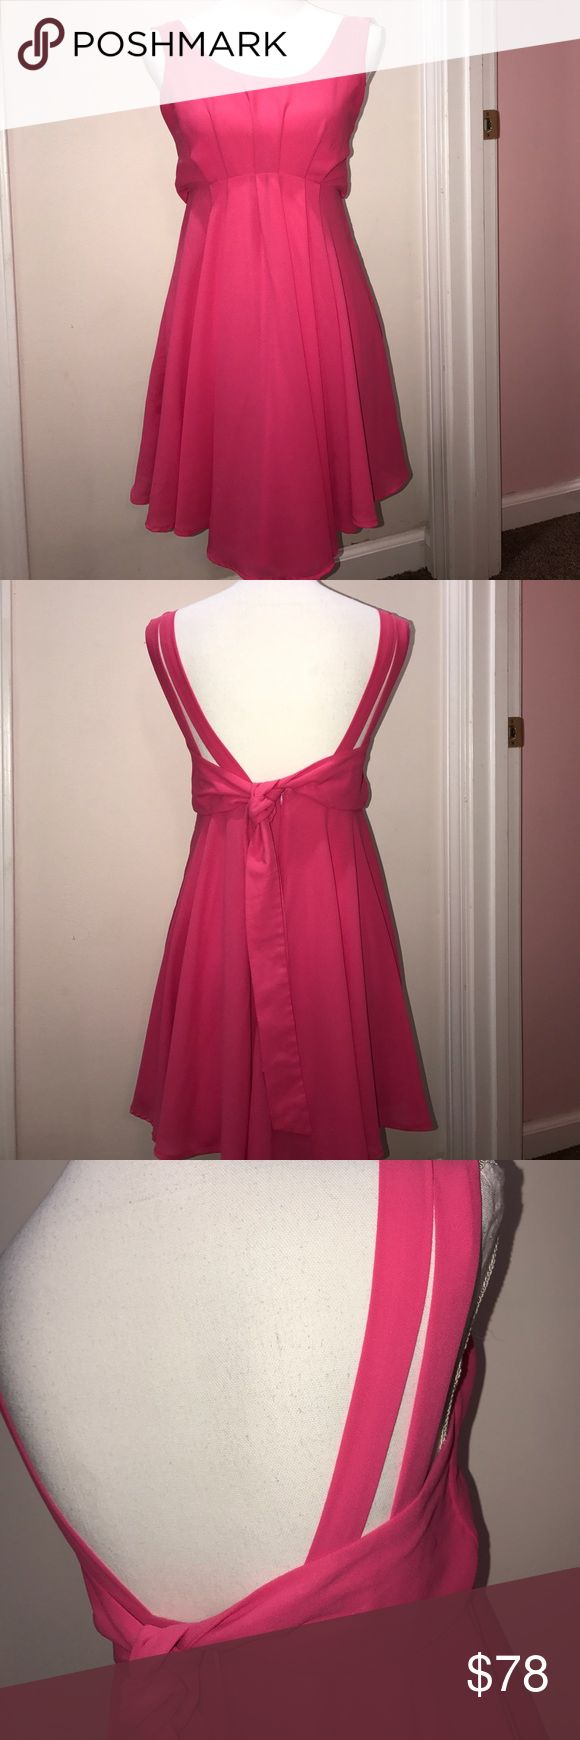 Tea n Cup Pink Dress with Double Straps Size Small Size Small Tea n Cup Dresses